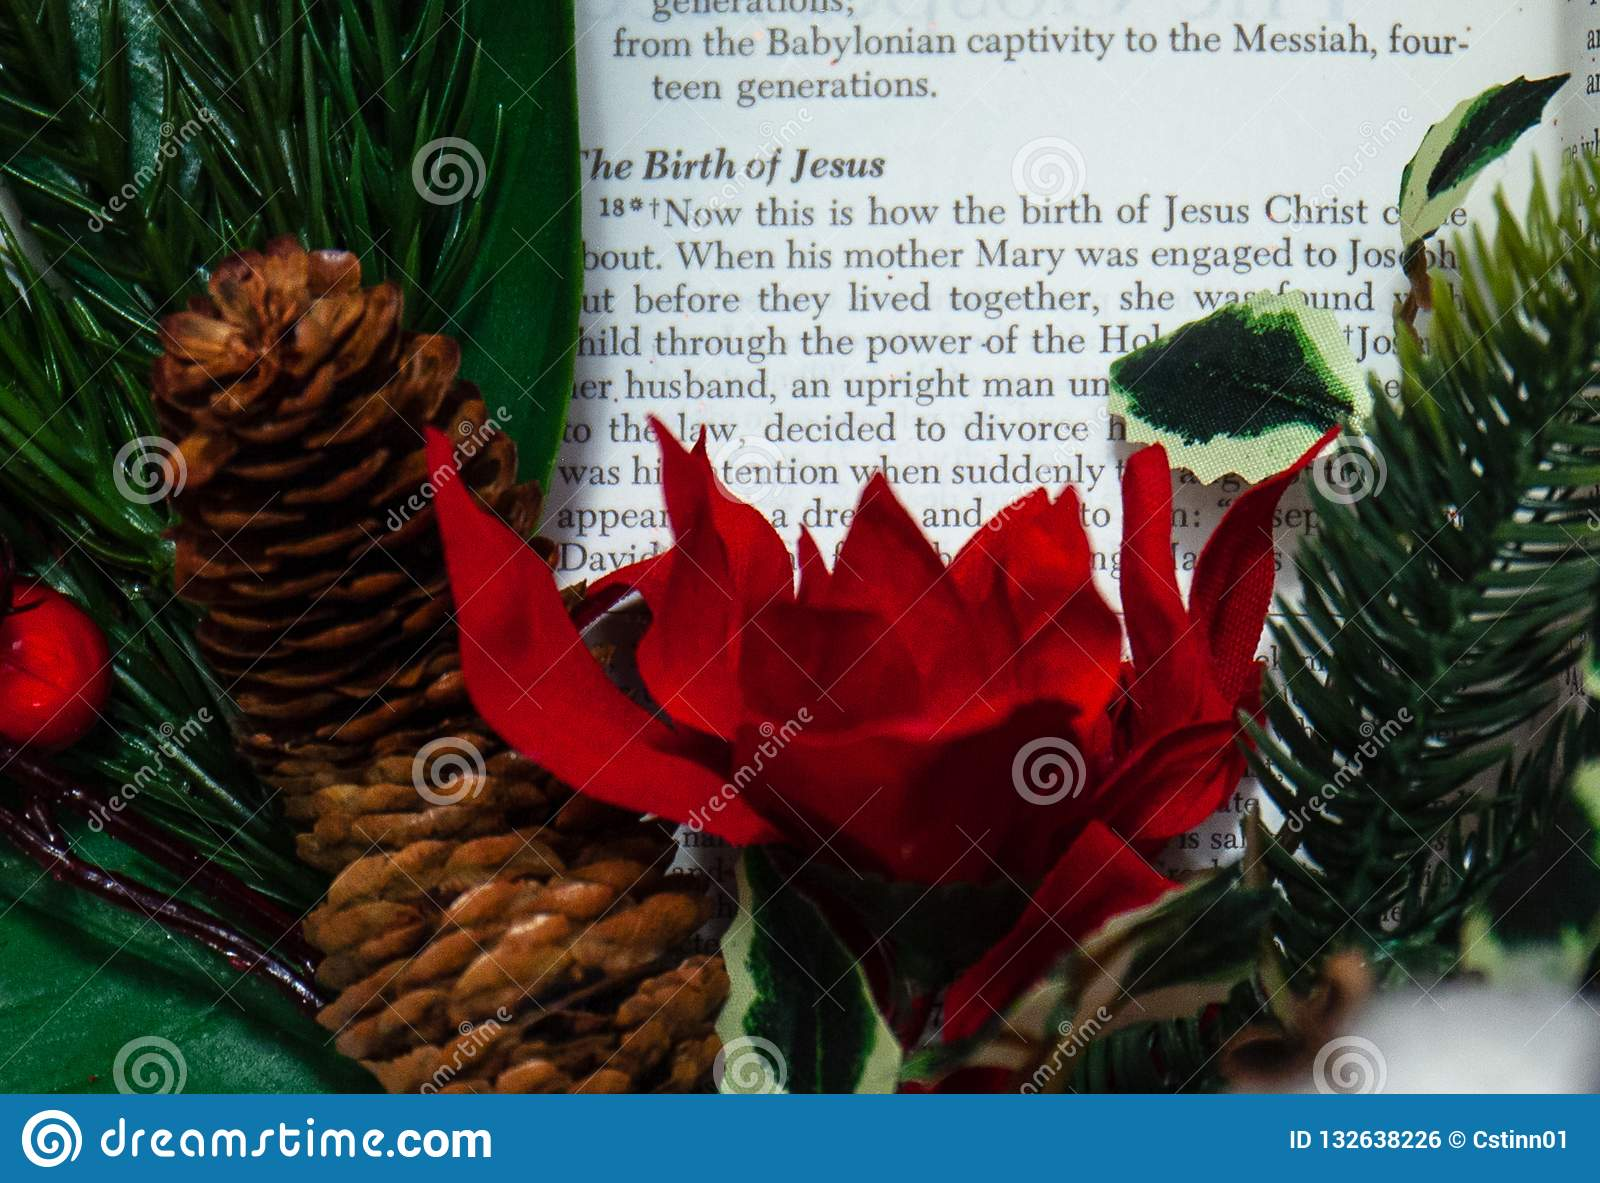 The Christmas Story Bible.Religious Bible Reading From The Christmas Story Of The Baby